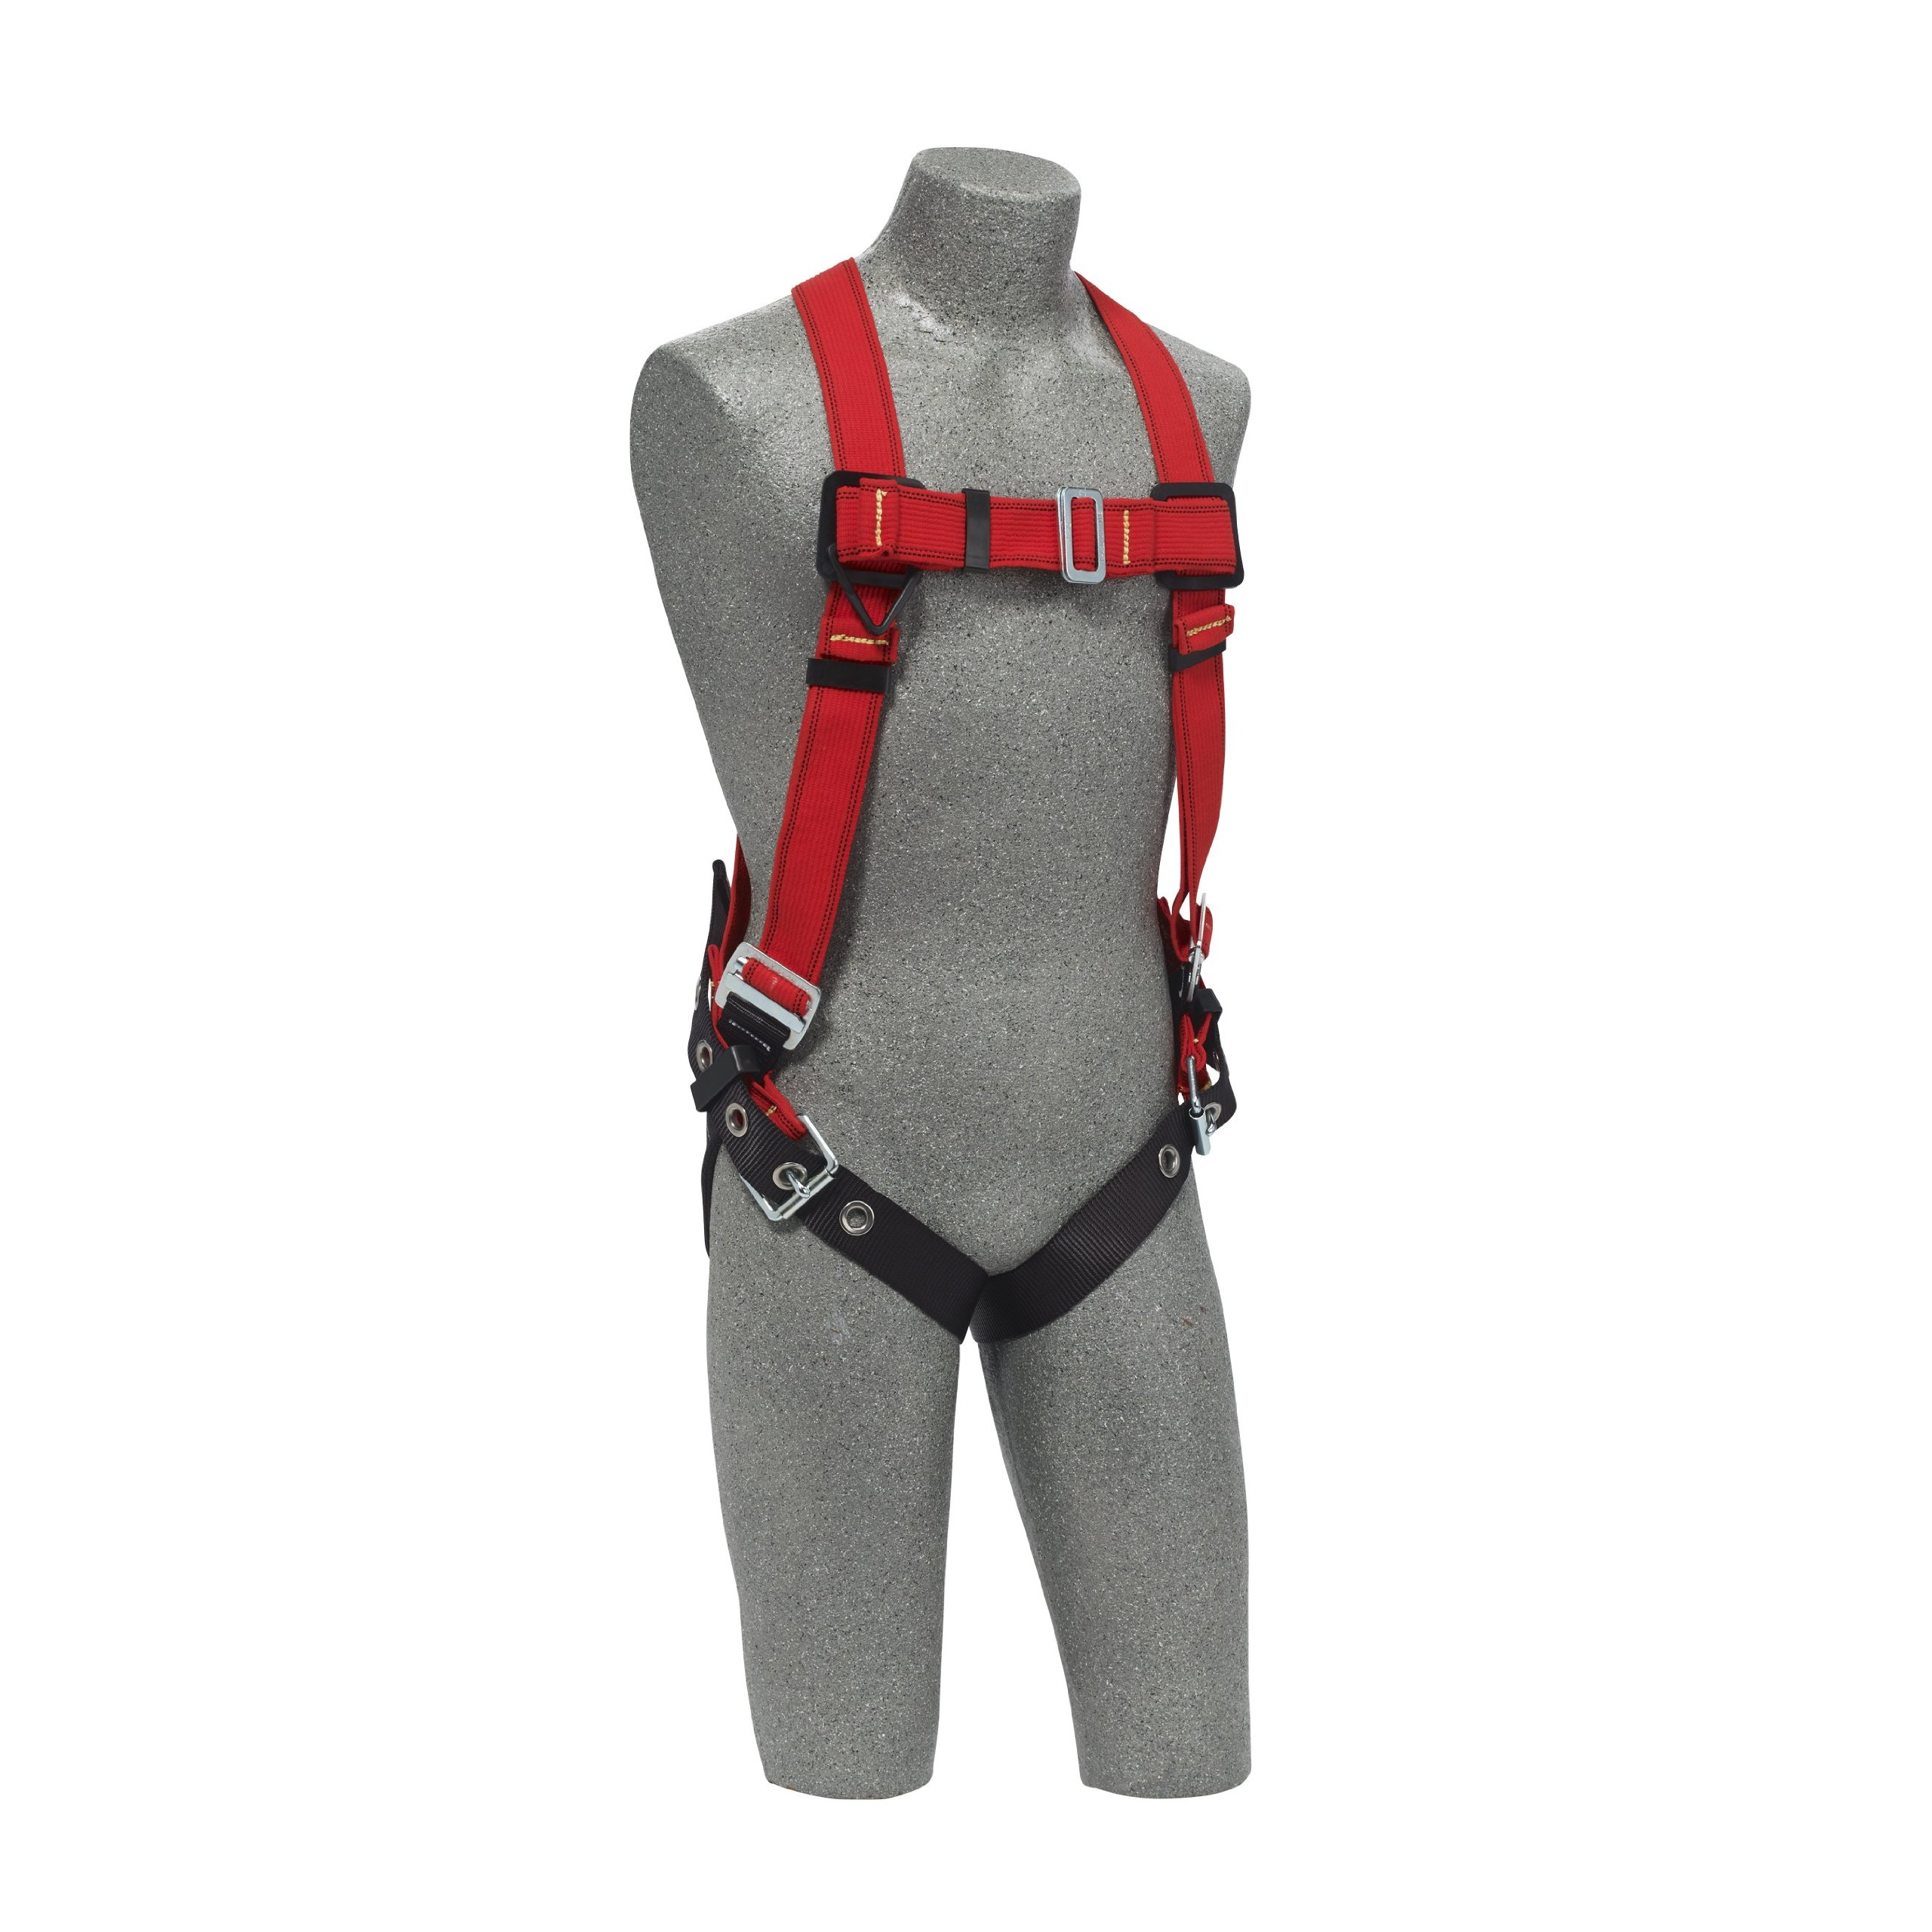 3M Protecta PRO 1191383 Fall Protection Full Body Welders Harness, with Back D-Ring, Tongue Buckle Legs, 420 Pound Capacity, Medium/Large, Red/Black